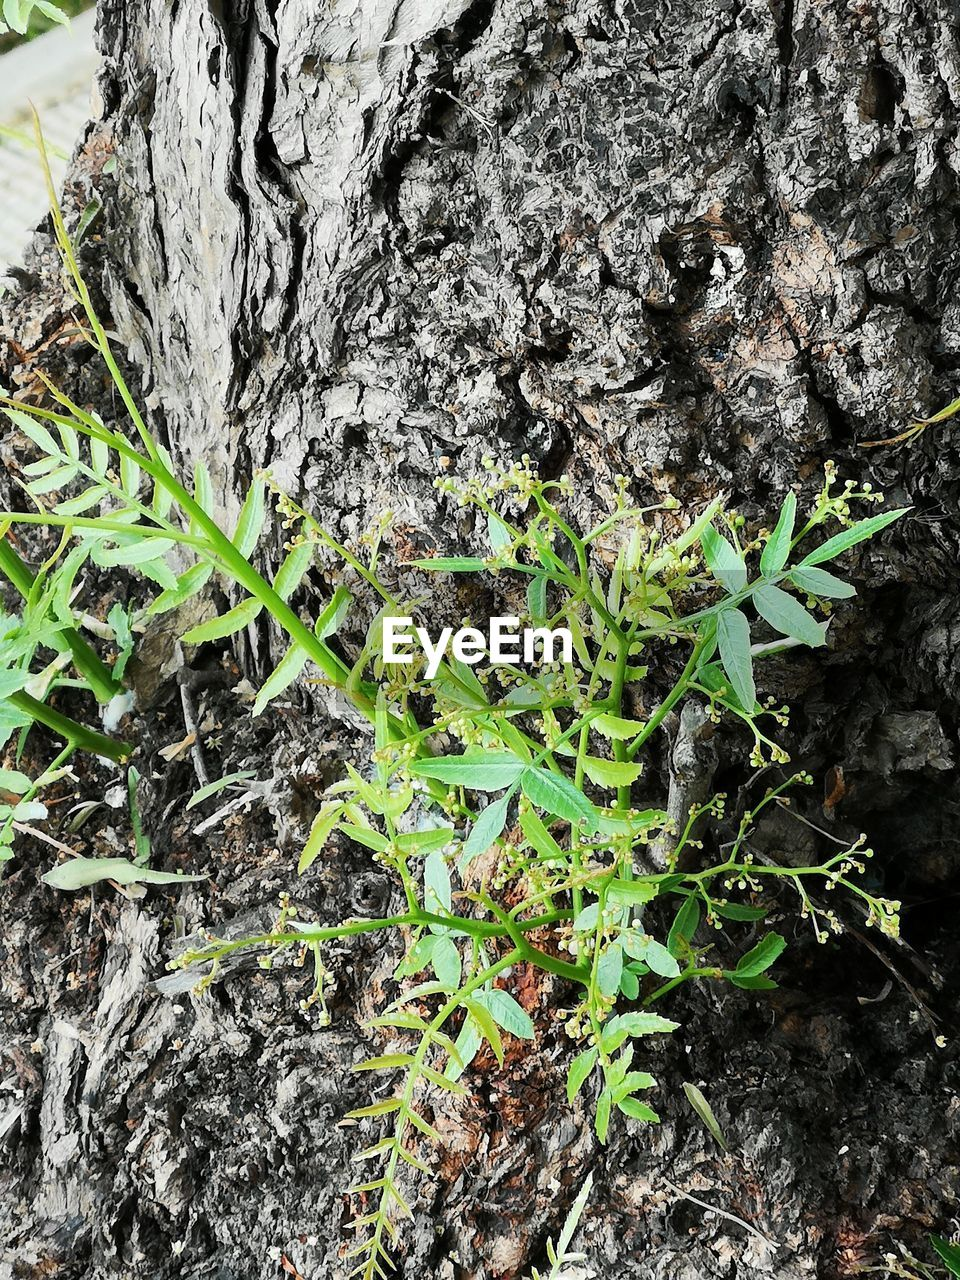 growth, plant, nature, tree trunk, trunk, plant part, leaf, beauty in nature, no people, day, green color, close-up, tree, outdoors, textured, field, tranquility, dirt, rough, land, bark, lichen